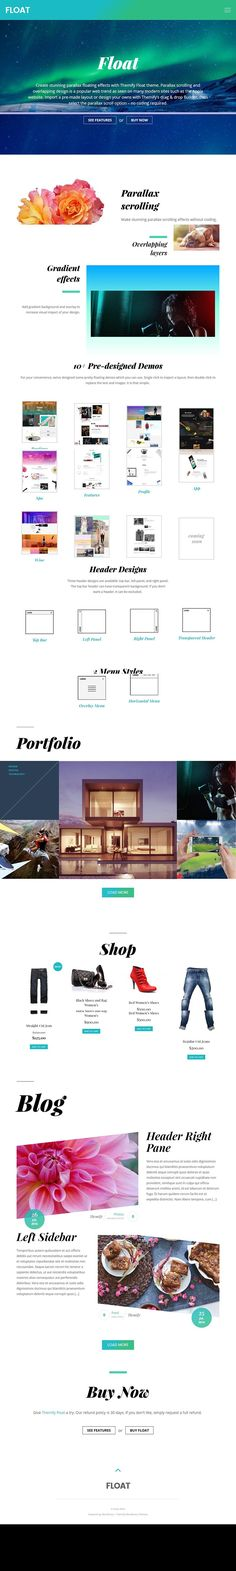 Float is a responsive WordPress theme suitable for portfolio or magazine websites. It helps you to create stunning parallax floating effects for your content. Premium Wordpress Themes, Blog, Apple, Magazine, Design, Trendy Tree, Apple Fruit, Blogging, Magazines